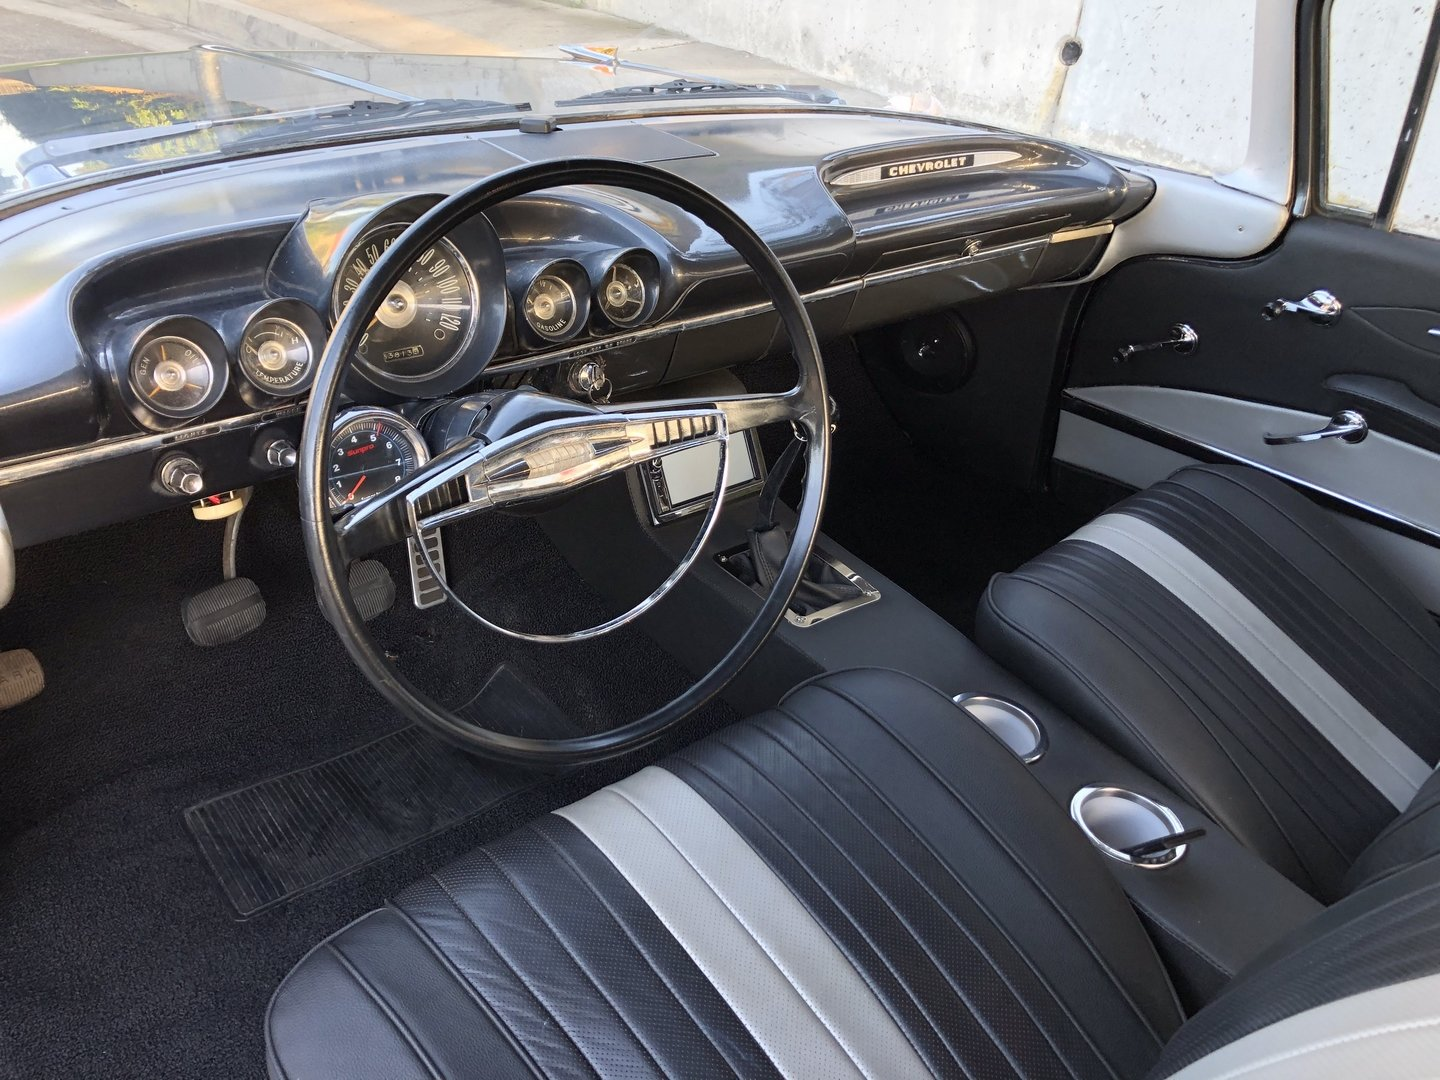 1959 Chevrolet Bel Air For Sale (picture 3 of 6)